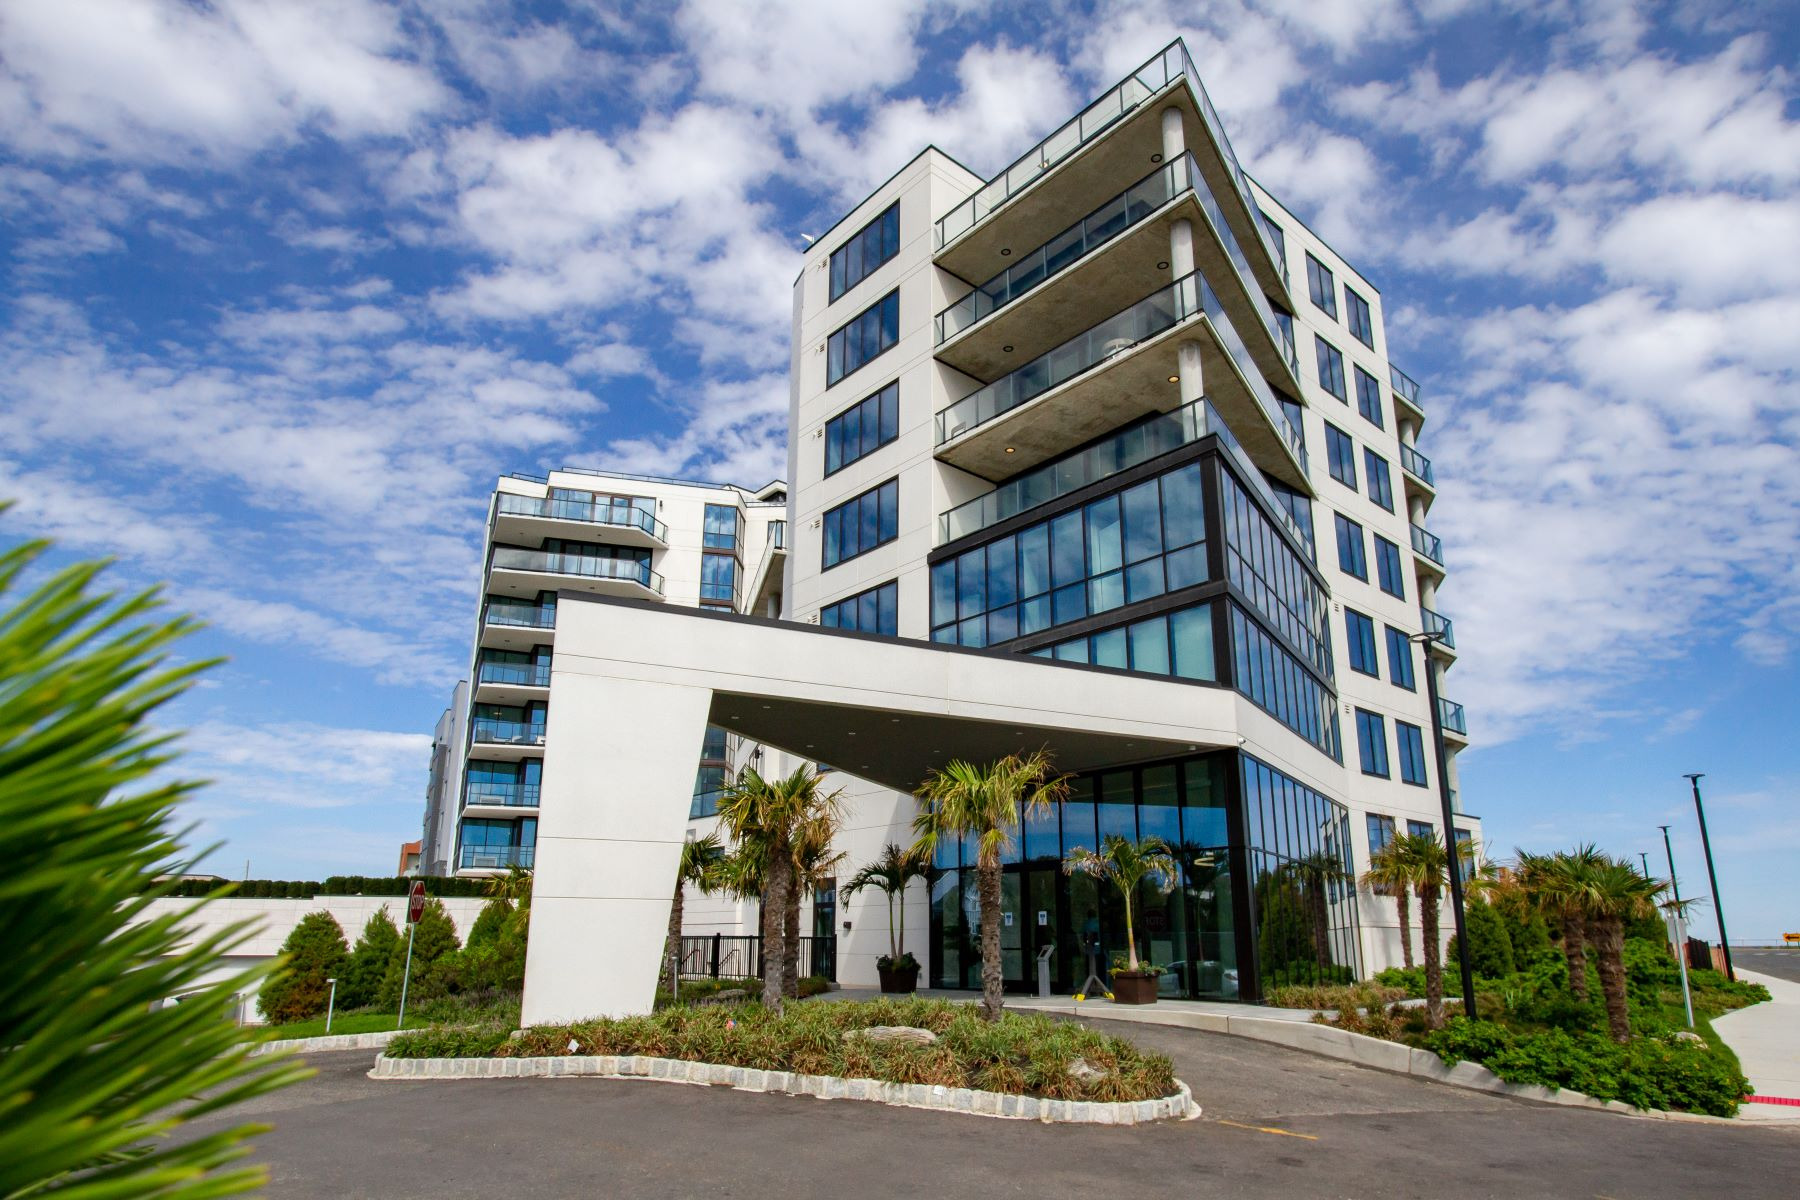 Condominiums for Sale at South Beach at Long Branch 350 Ocean Avenue 103/206, Long Branch, New Jersey 07740 United States